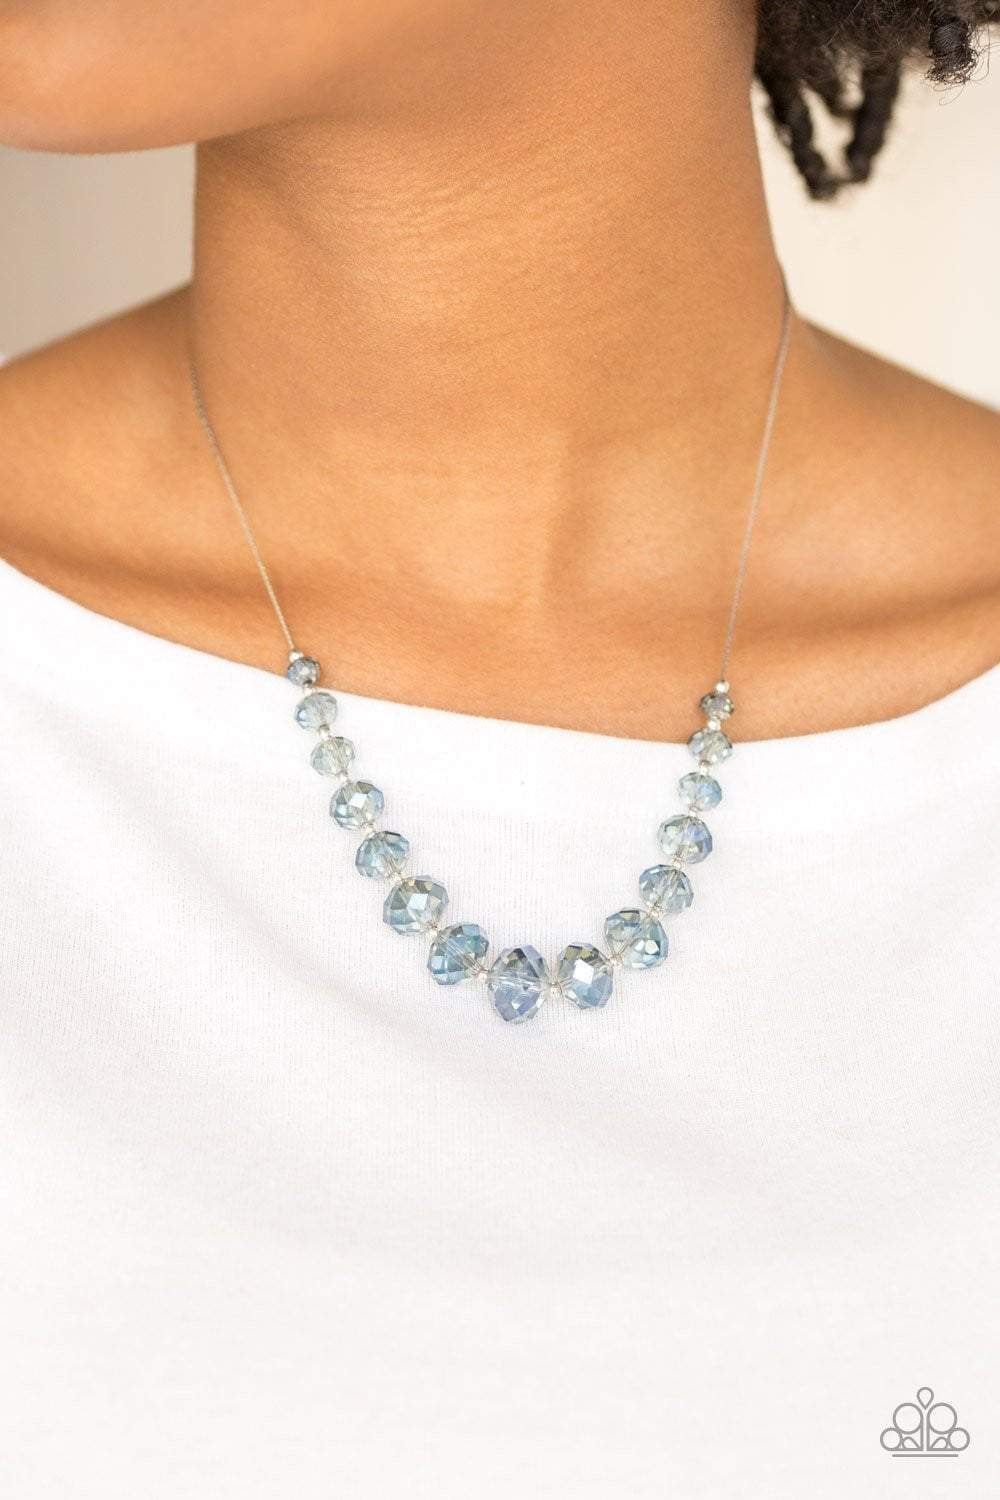 Paparazzi Crystal Carriages - Multi Necklace - Bling It On Online